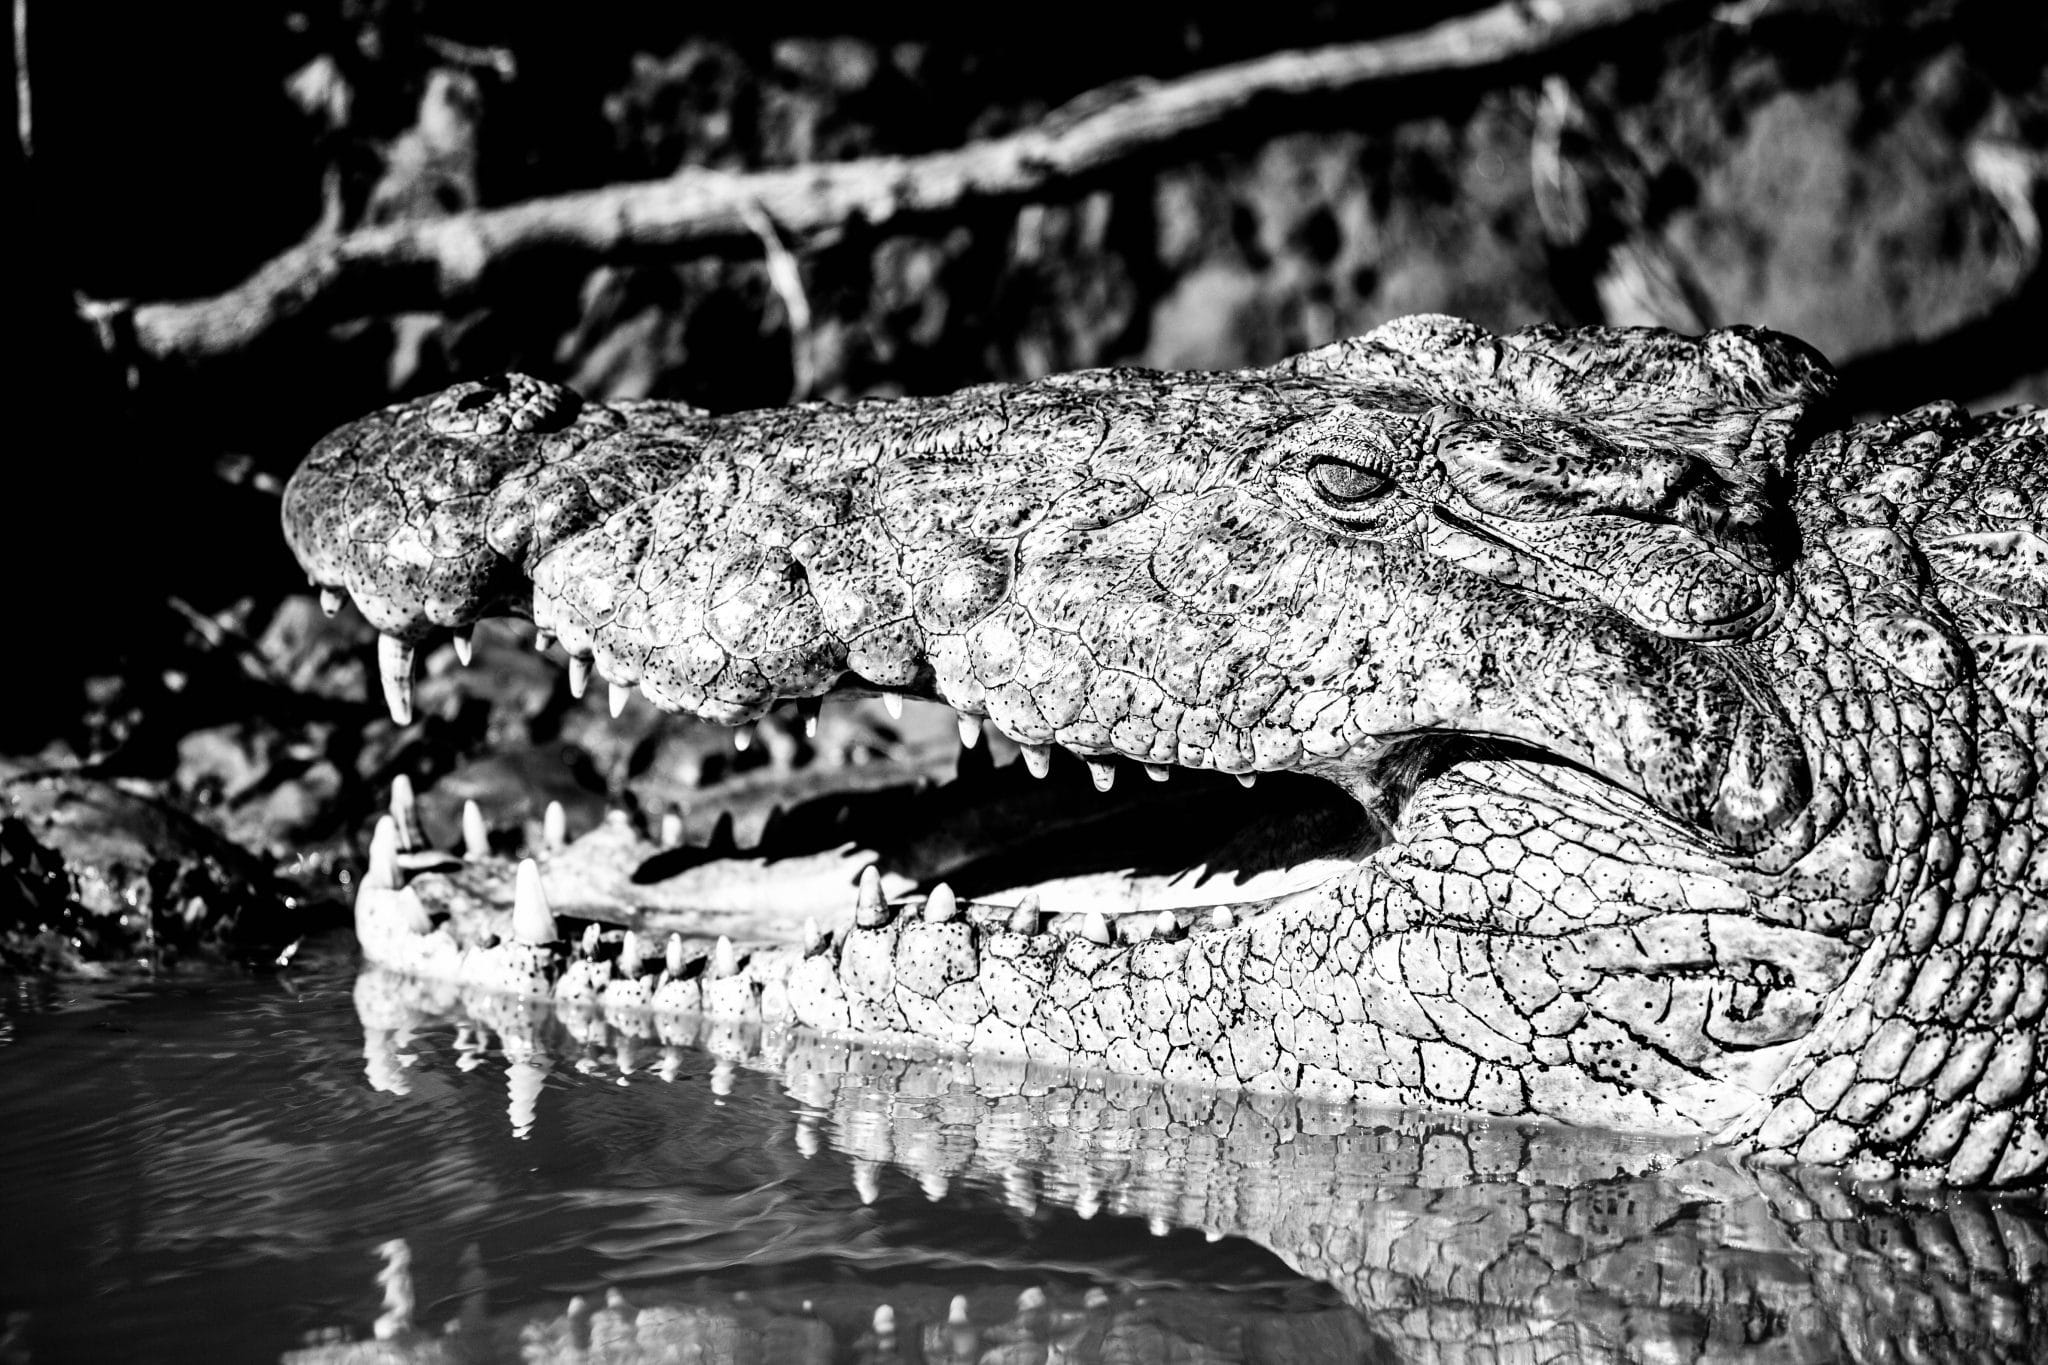 nile Crocodiles (Crocodylus niloticus) facts